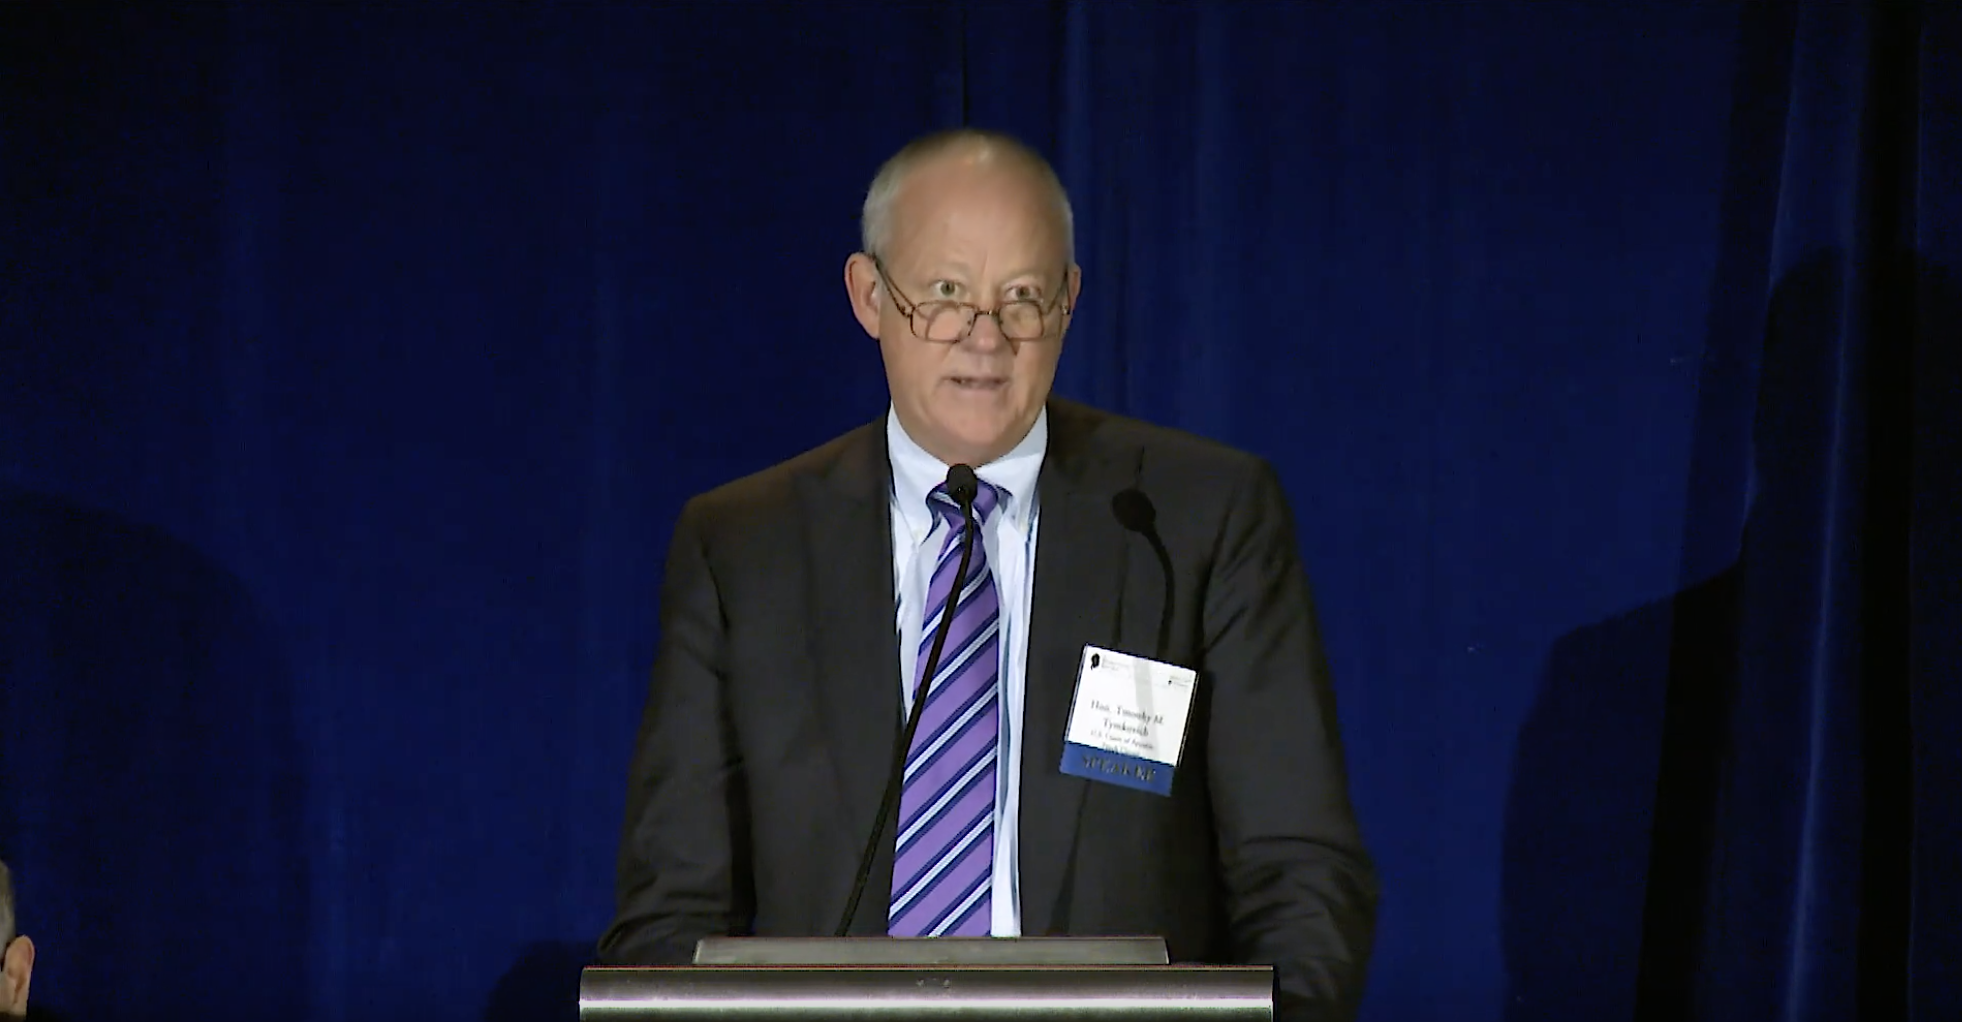 Judge Timothy Tymkovich speaks at a Federalist Society conference in 2018. (YouTube screenshot/Federalist Society)